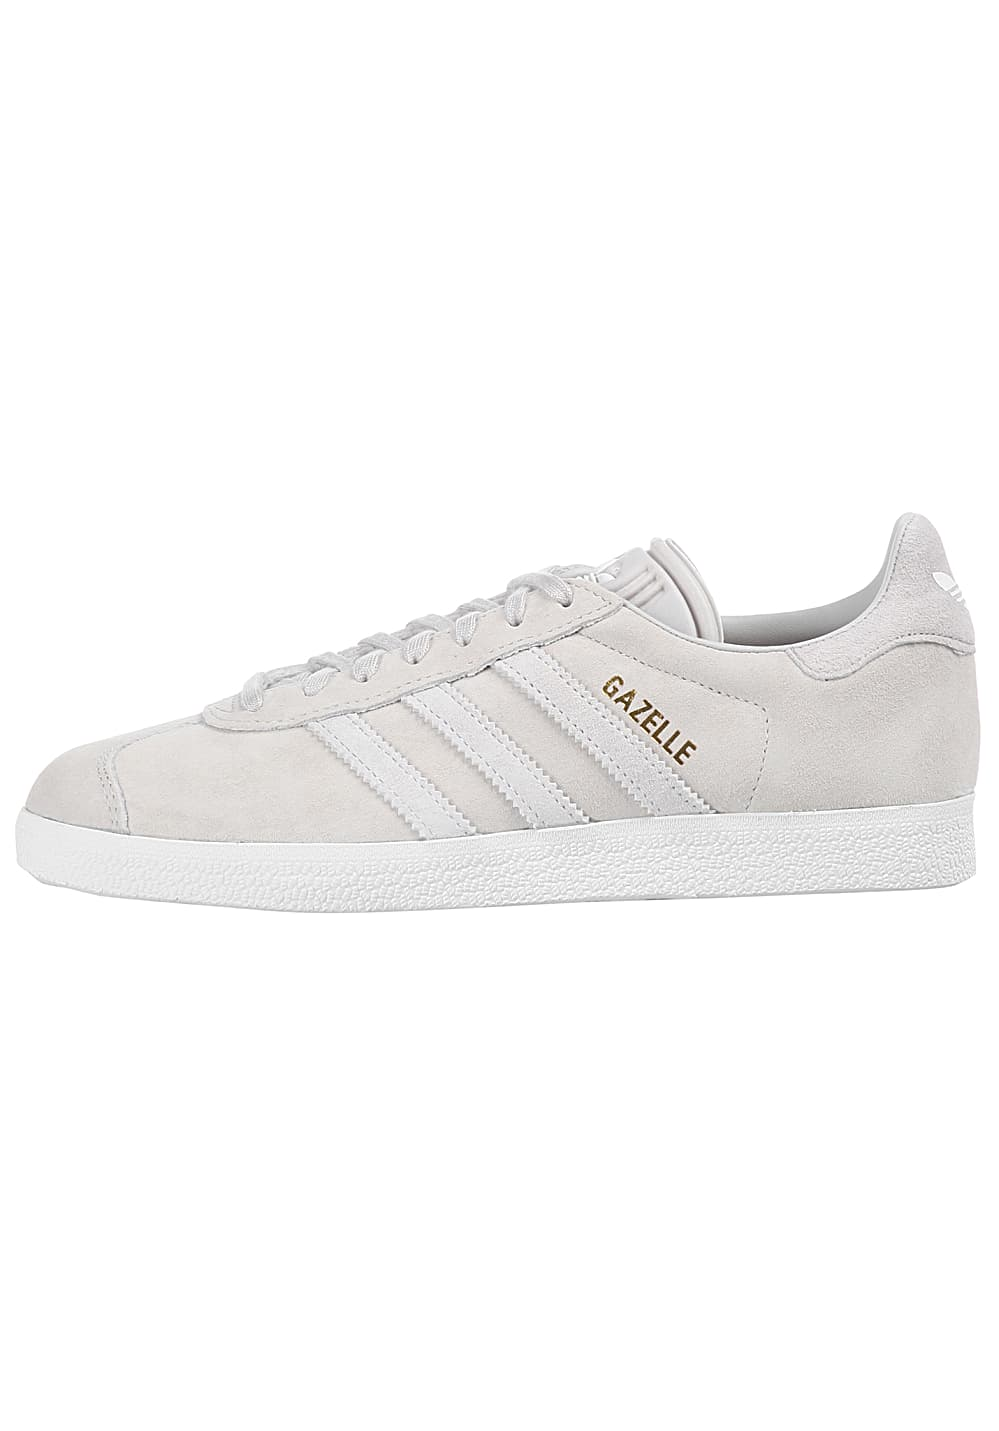 adidas Originals Gazelle - Sneaker für Damen - Grau - Planet ...